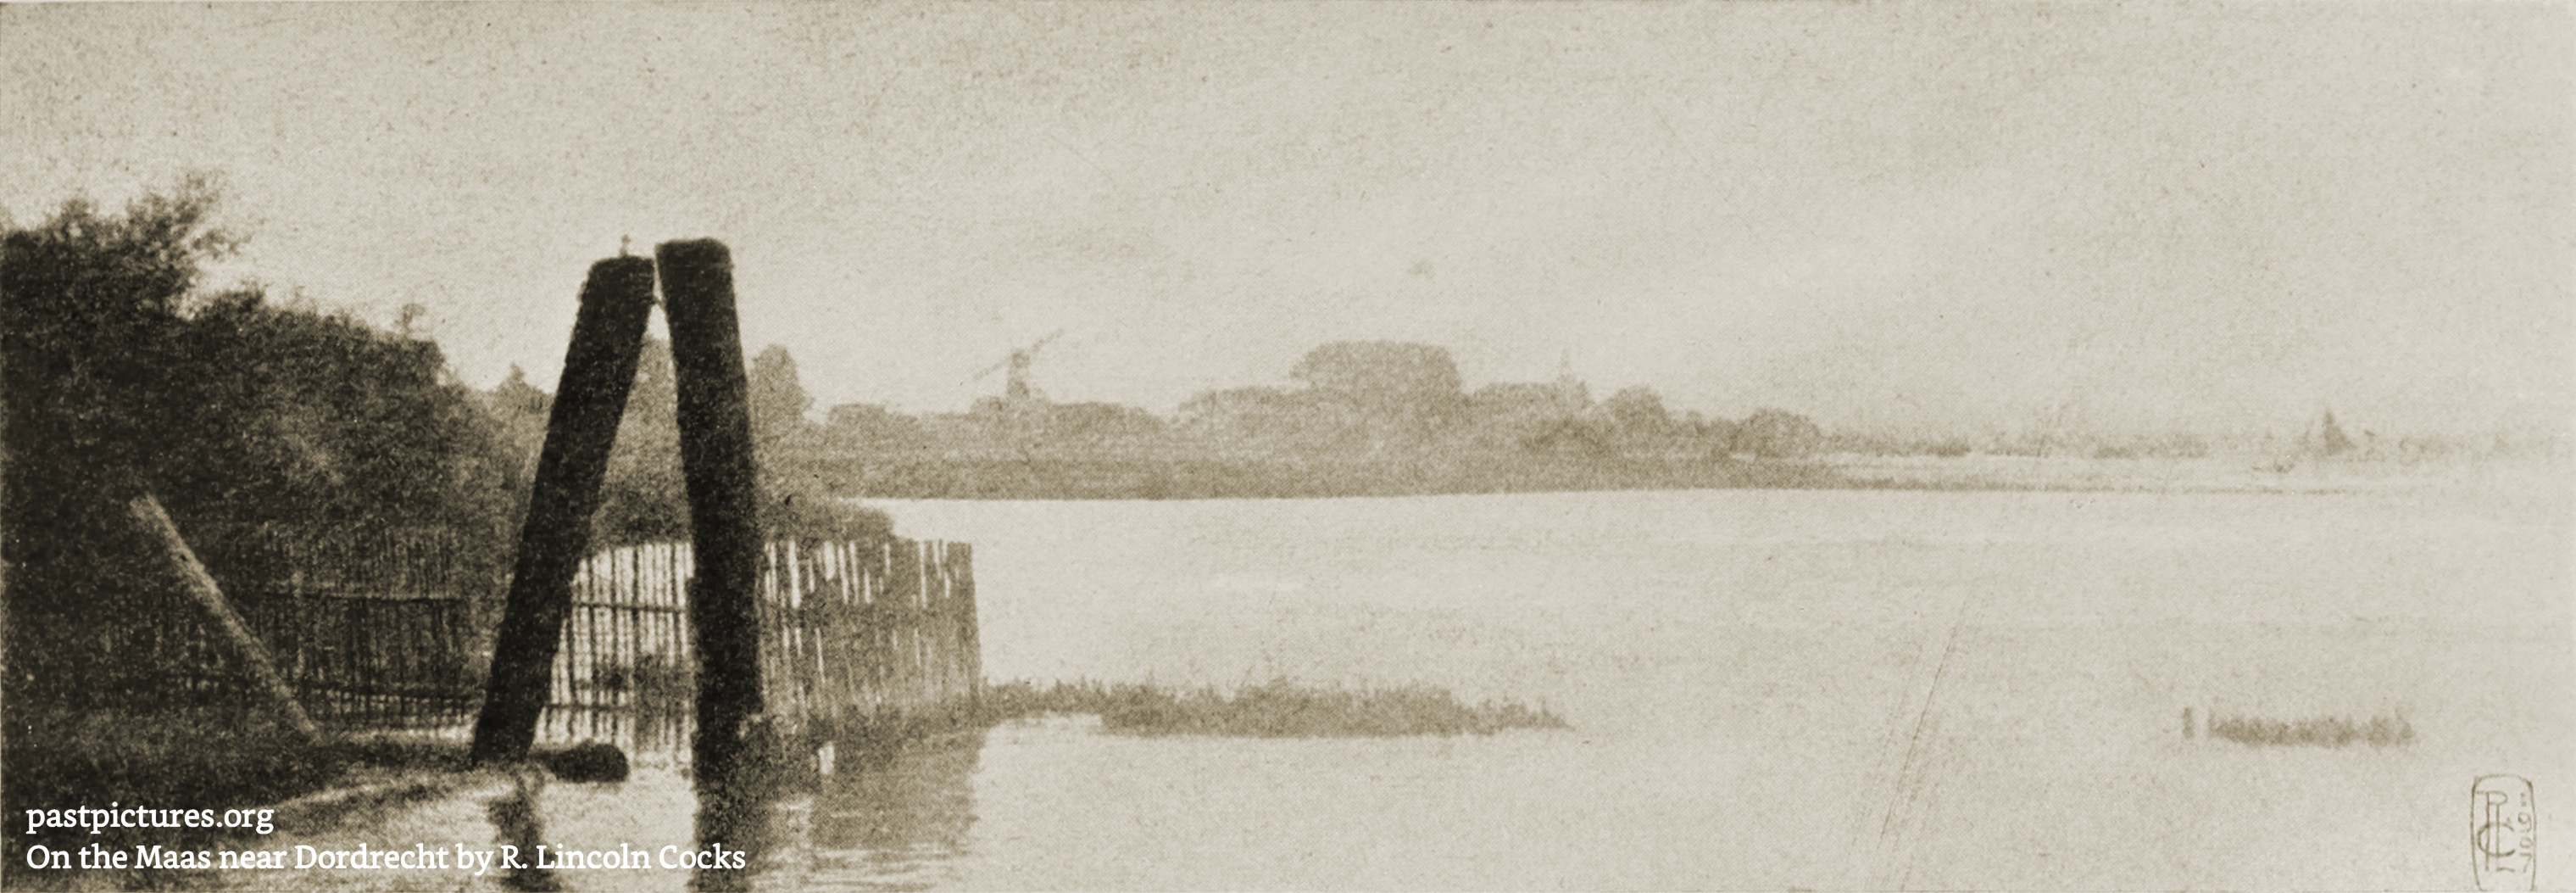 On the Maas near Dordrecht, Netherlands by R. Lincoln Cocks 1907